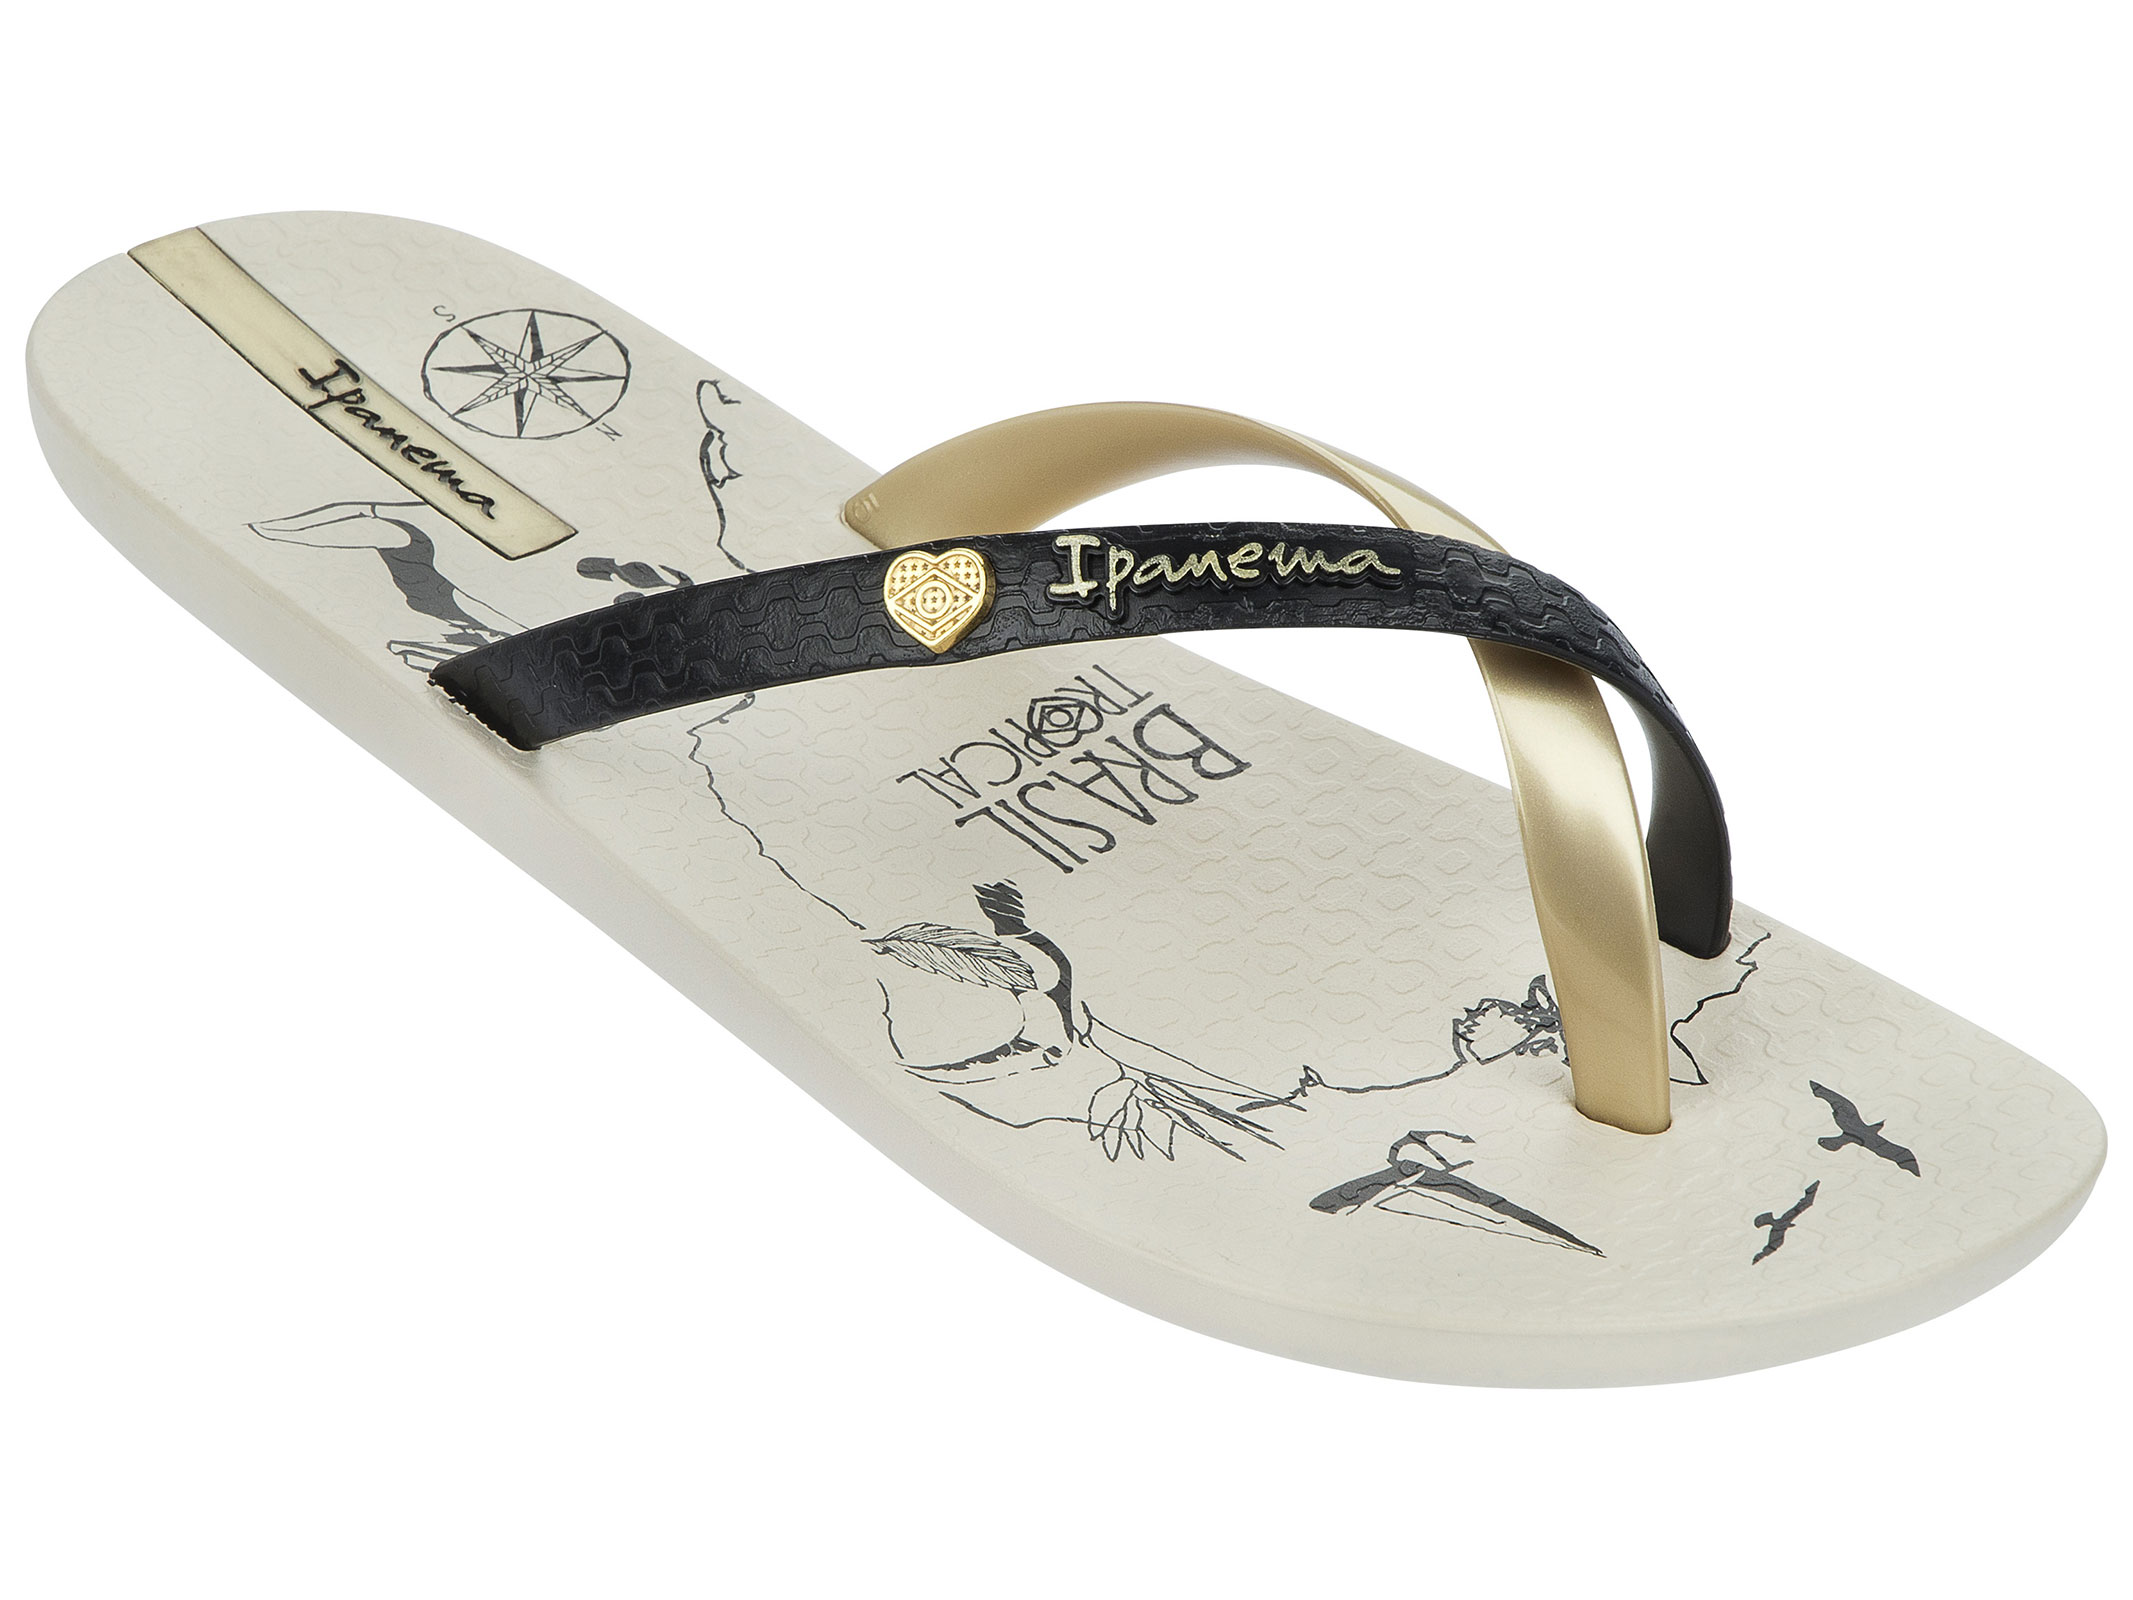 Beige Flip-flops Decorated With A Map Of Brazil - Charme Made In Brazil - Beige/black/gold